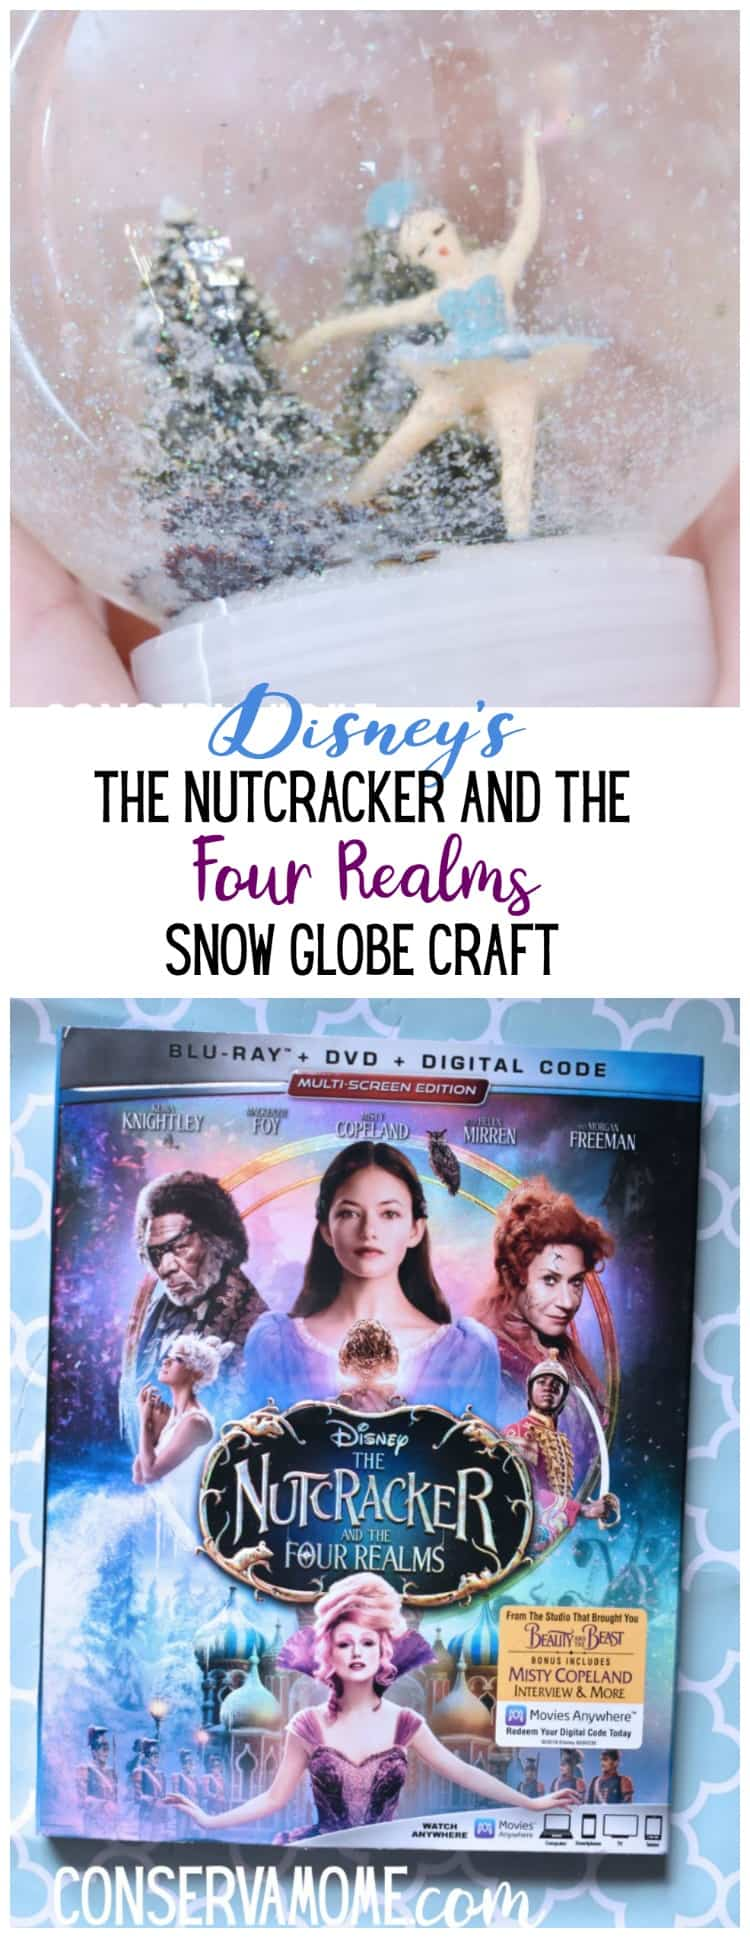 If teamed up with Walt Disney Pictures to bring you a magical craft, The Nutcracker and the Four Realms snow globe craft tutorial. This is an easy and fun craft that's perfect for a birthday party, viewing party or just because